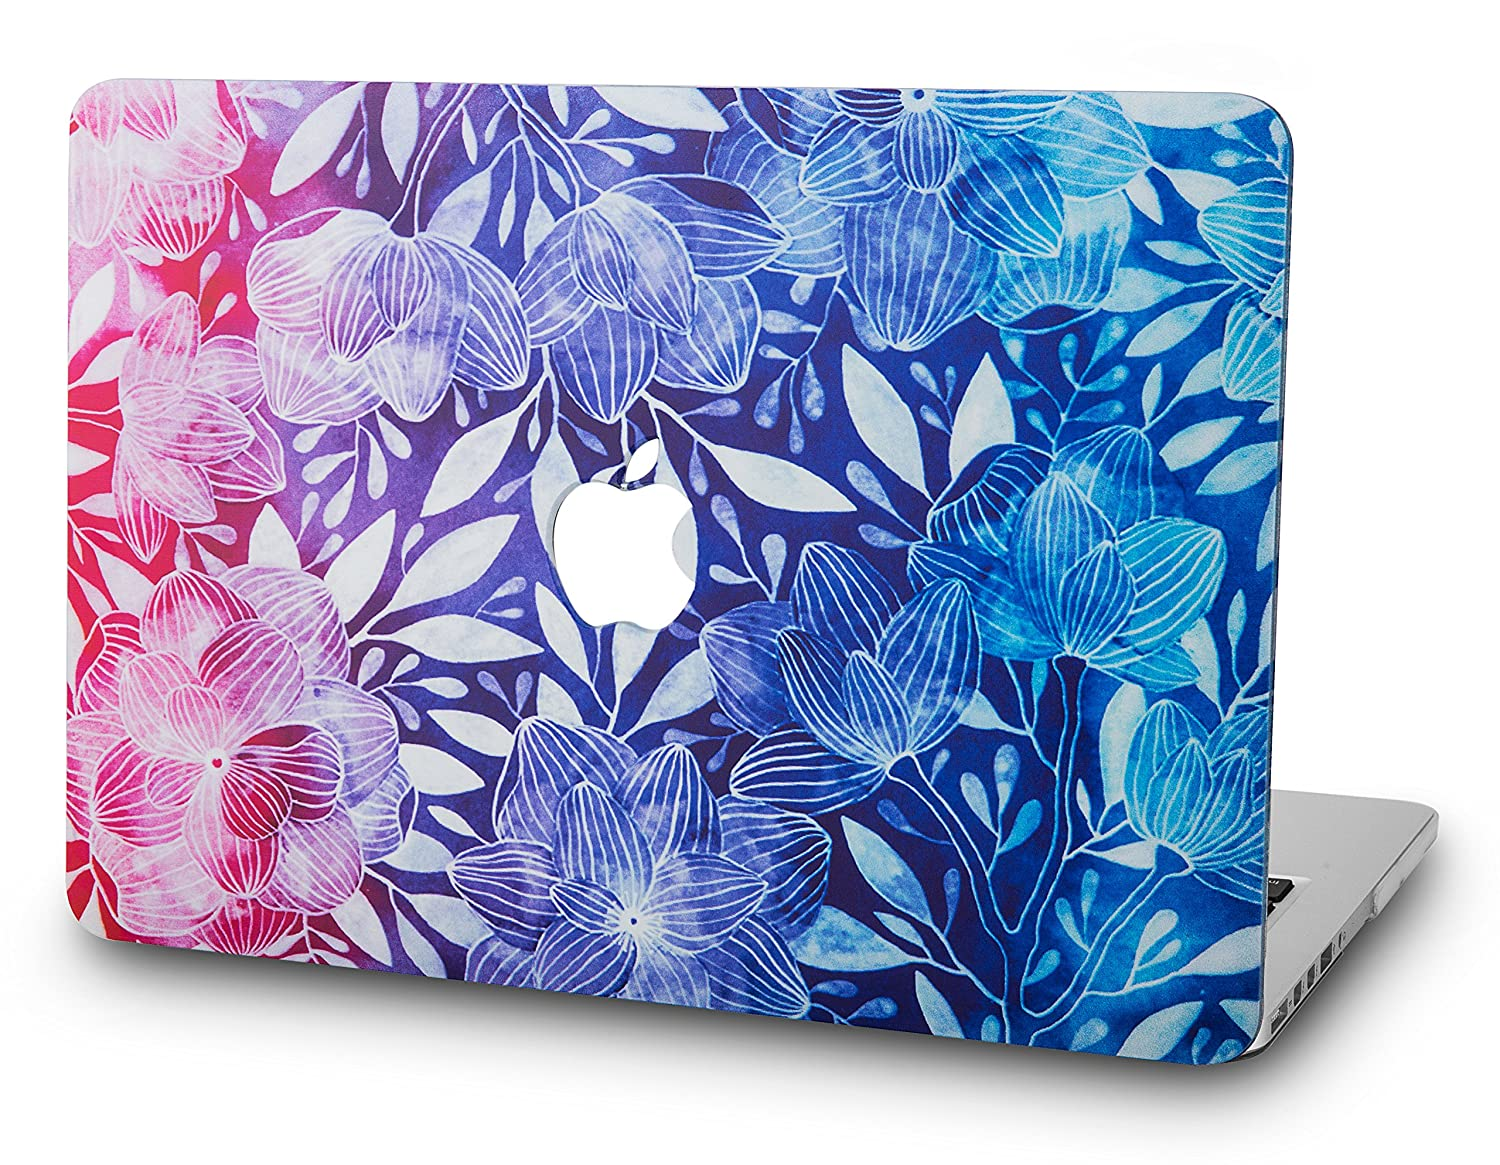 KEC MacBook Pro 13 Case 2017 & 2016 Plastic Hard Shell Cover A1706 / A1708 with/without Touch Bar Oil Painting (Rainbow Mist) RM-P13-2016